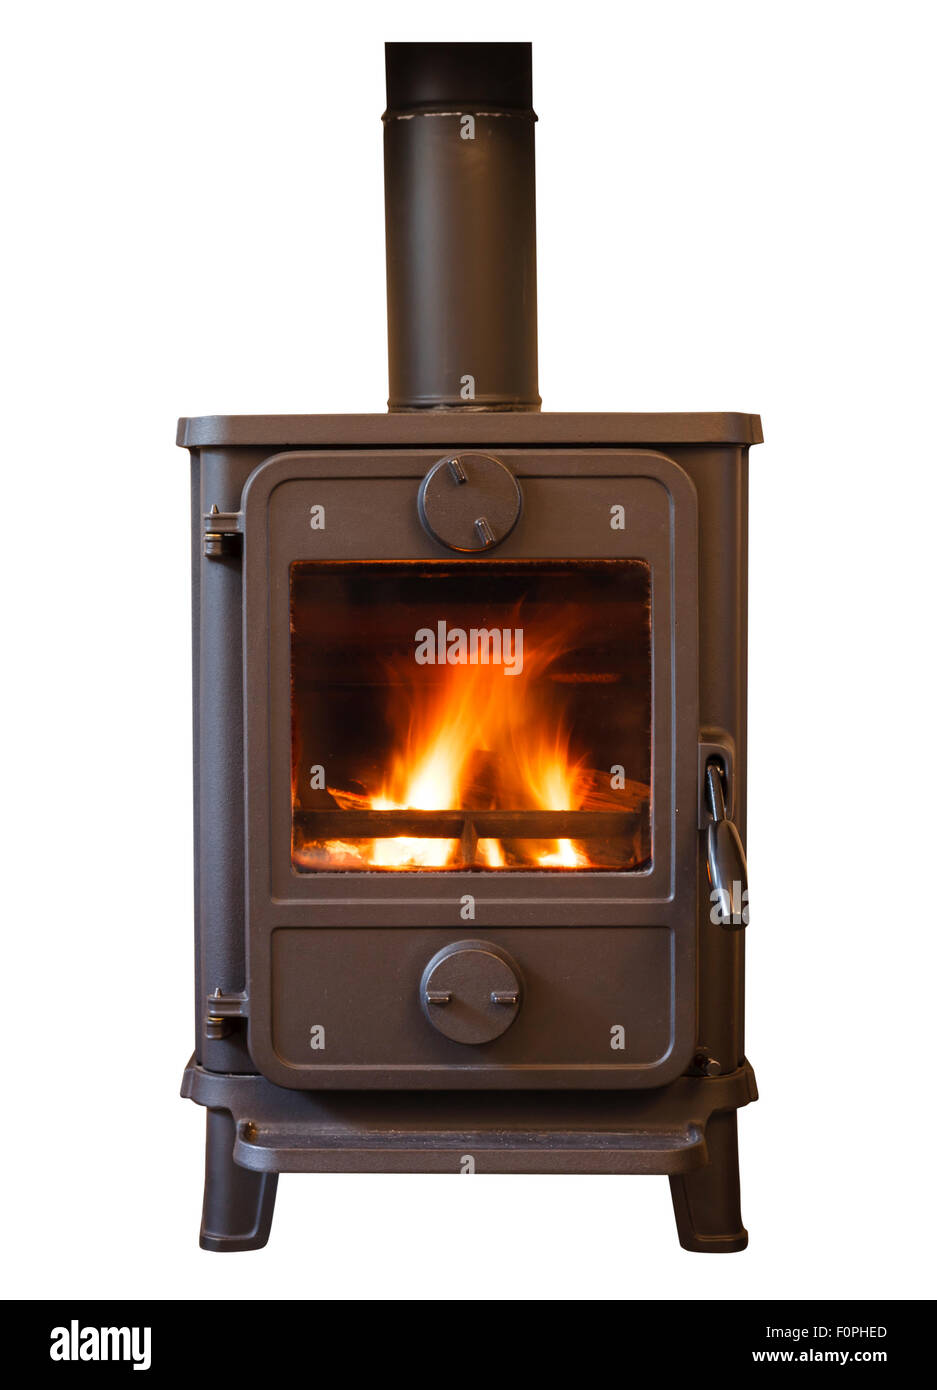 Closeup of a cosy wood burning stove - Stock Image